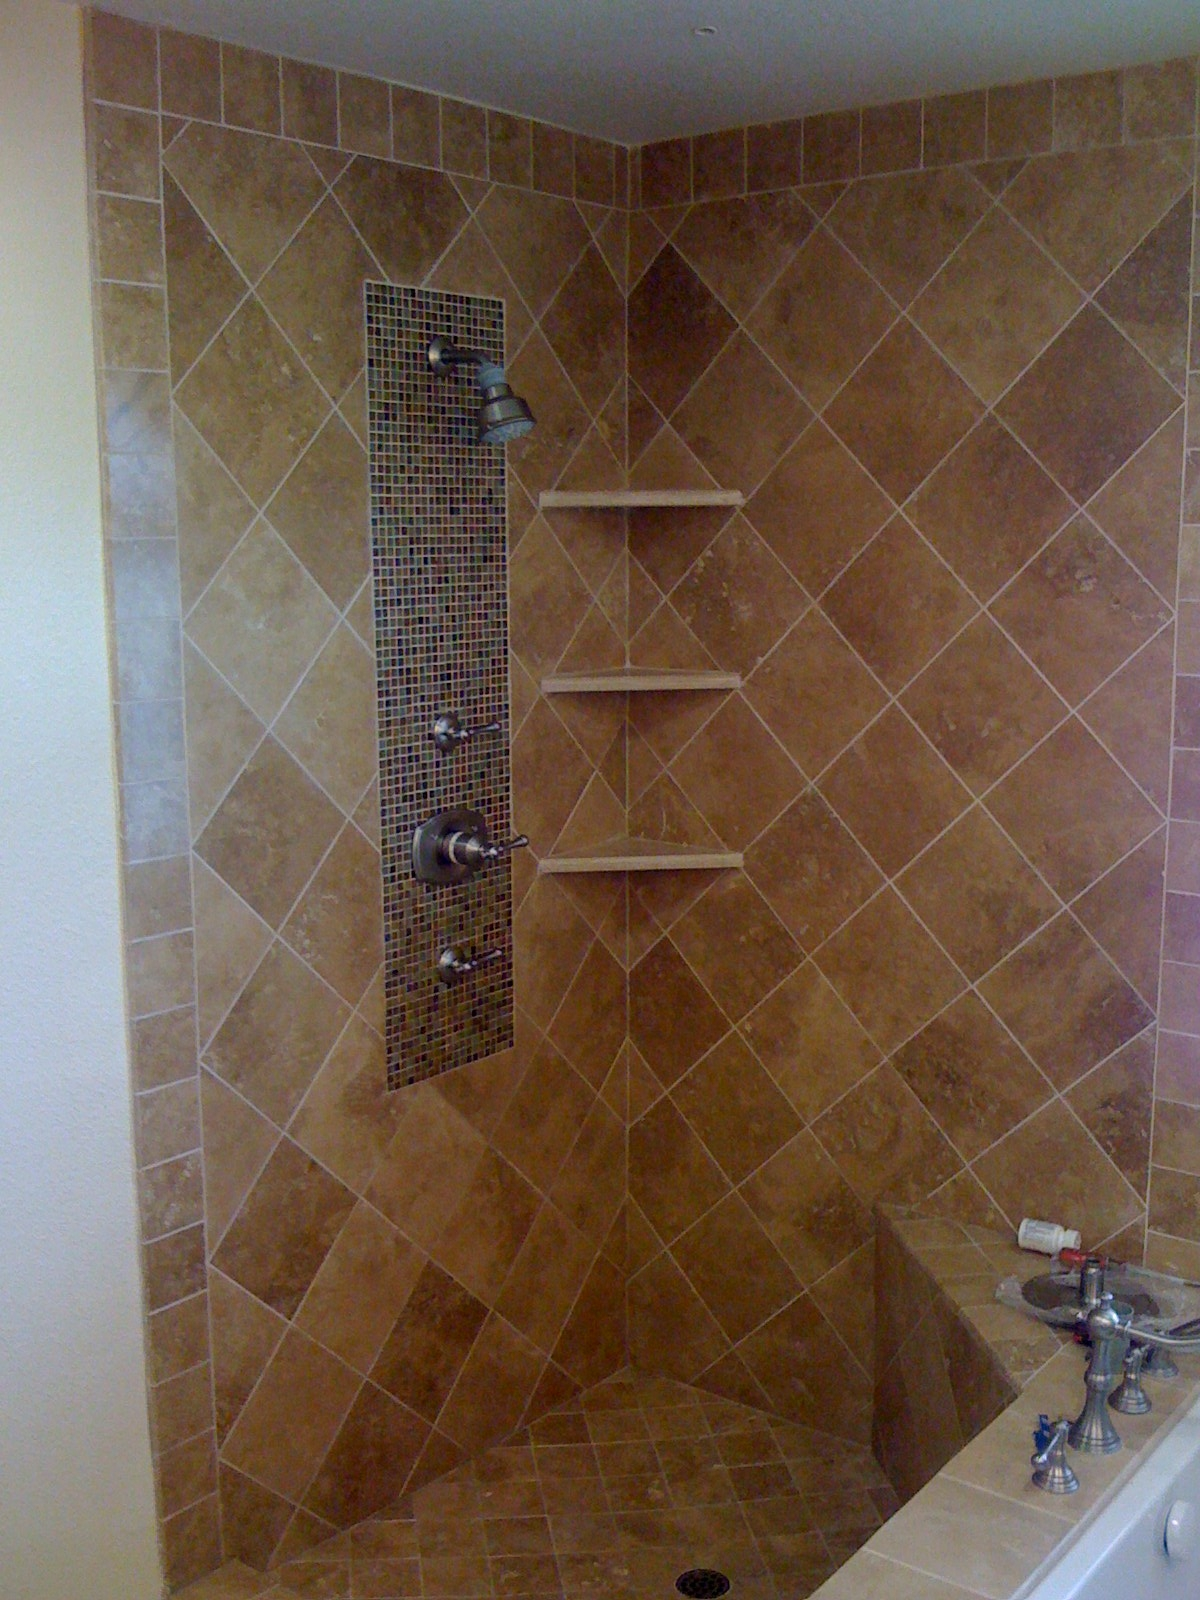 Mosaic Tile Amp Corner Shelving Bathroom Porter Ranch